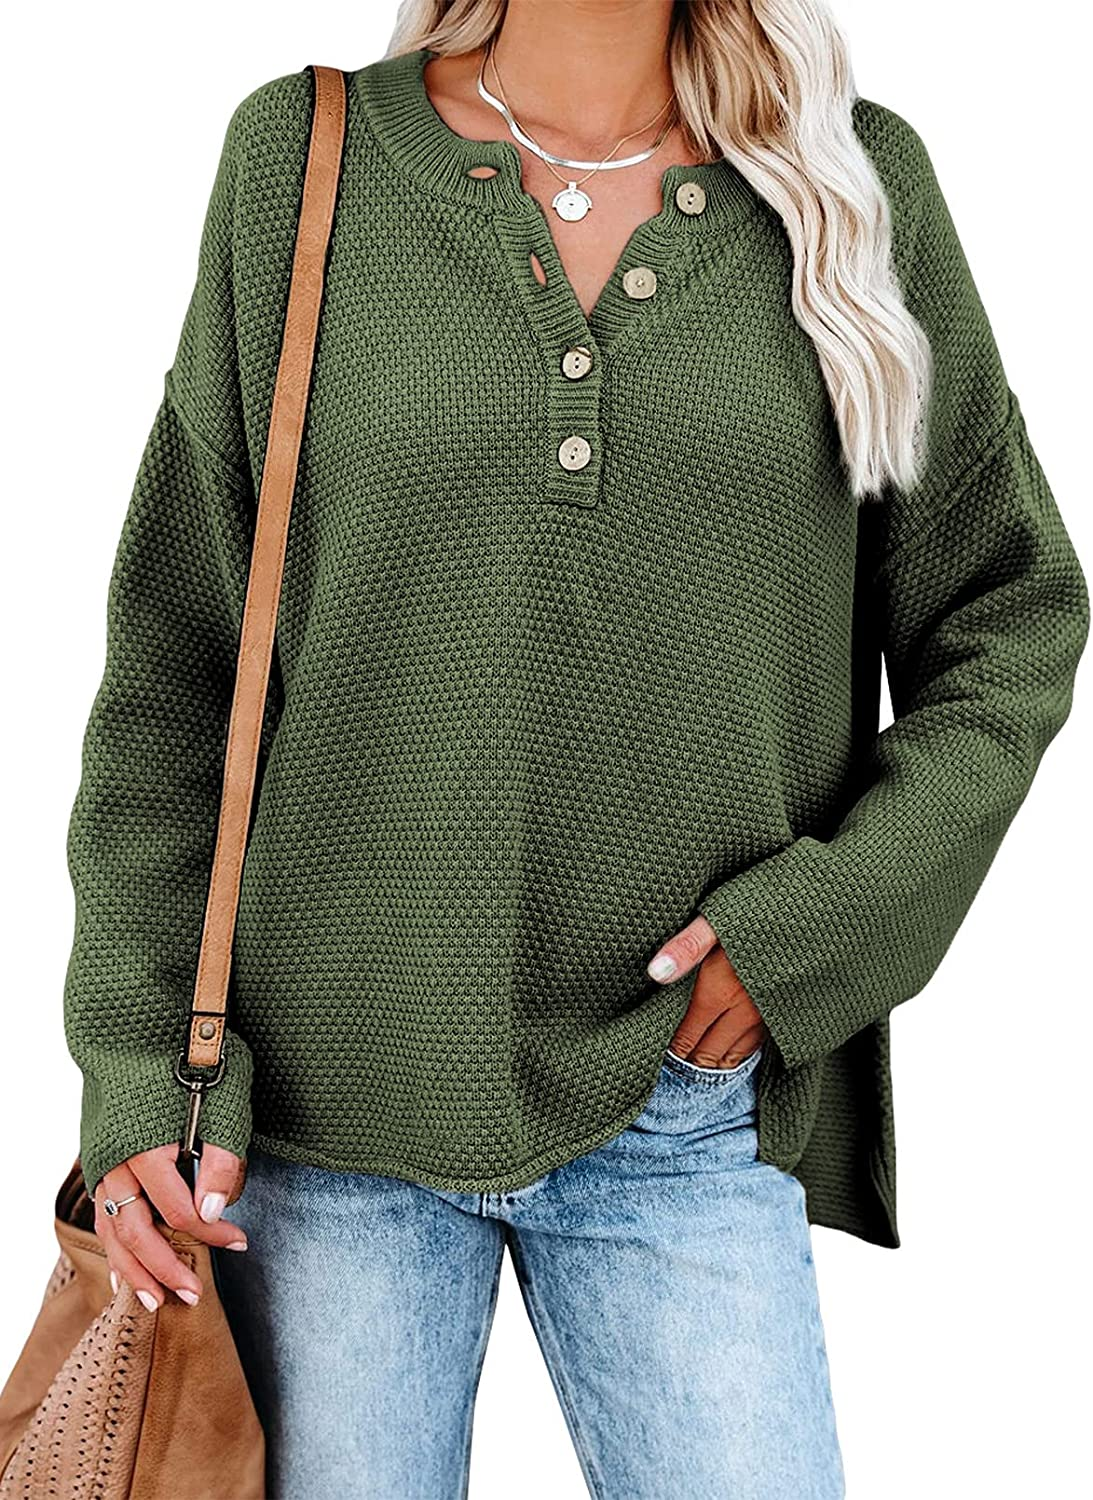 HOTAPEI Women's V Neck Ribbed Button Knit Henley Tops Casual Long Sleeve Pullover Sweater Blouses